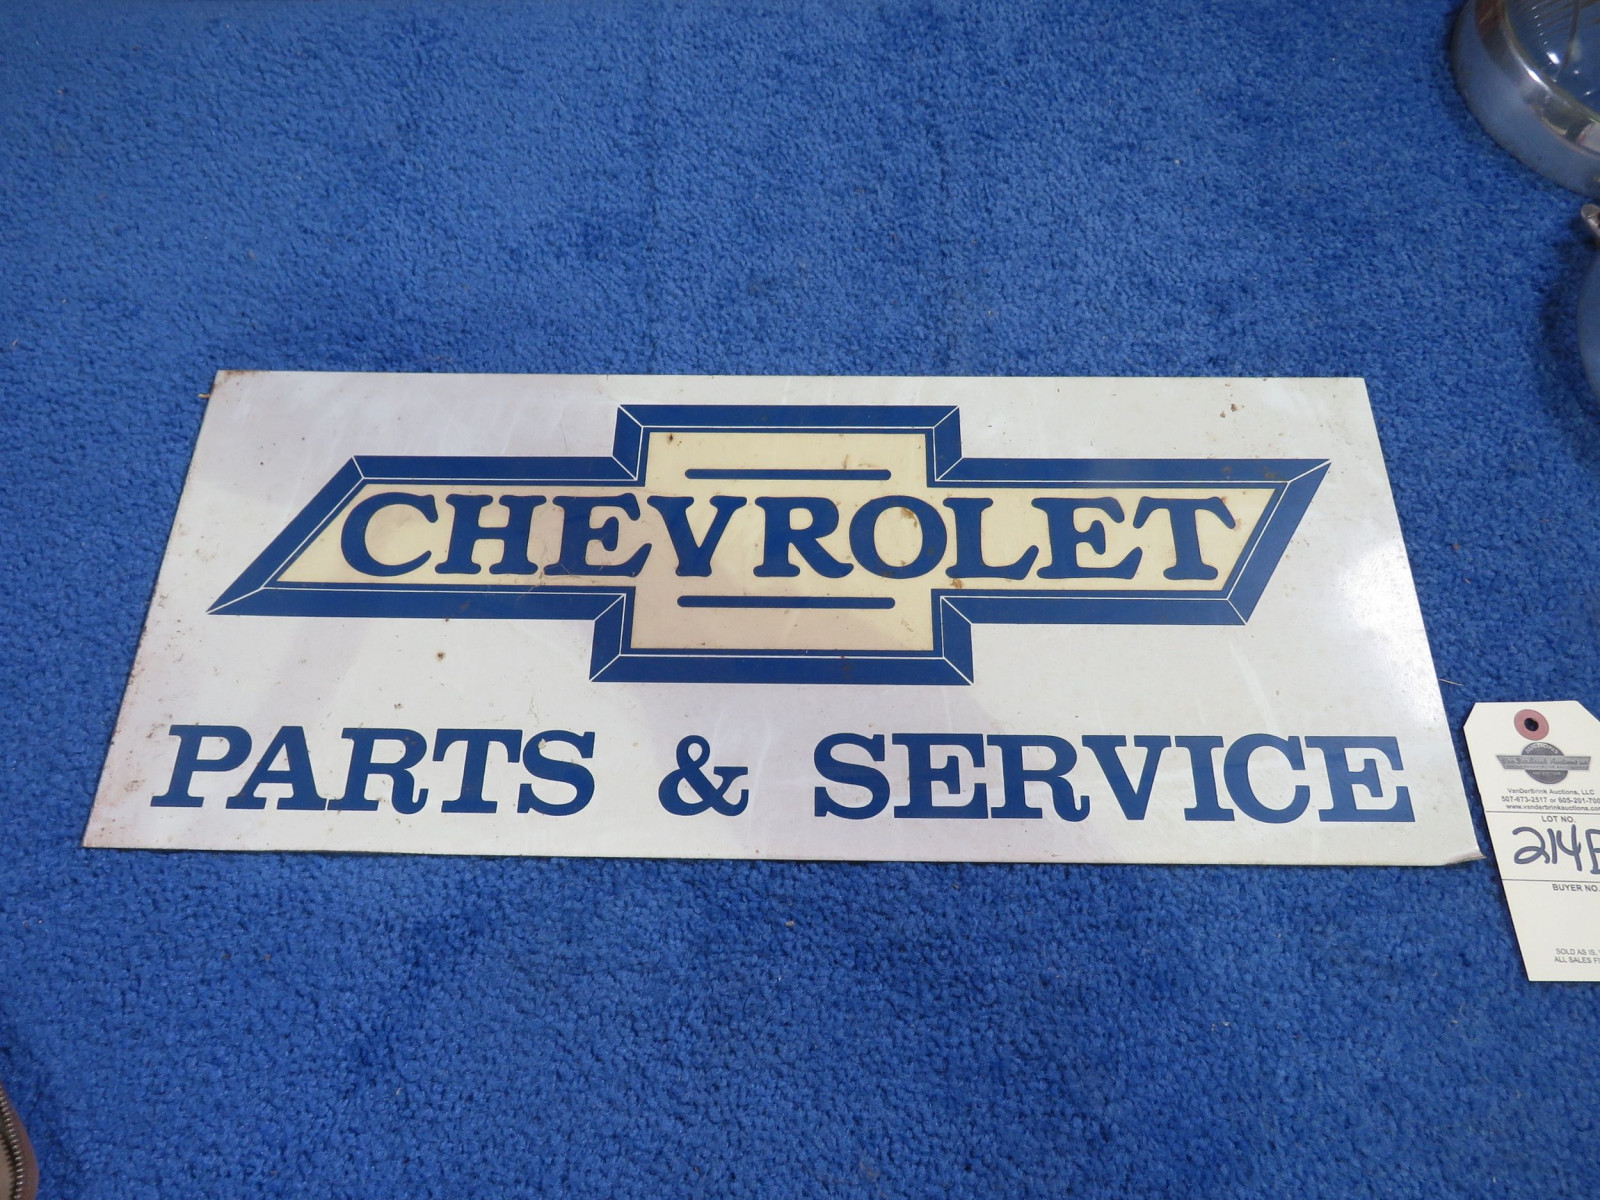 Chevrolet Sign Painted - Image 1